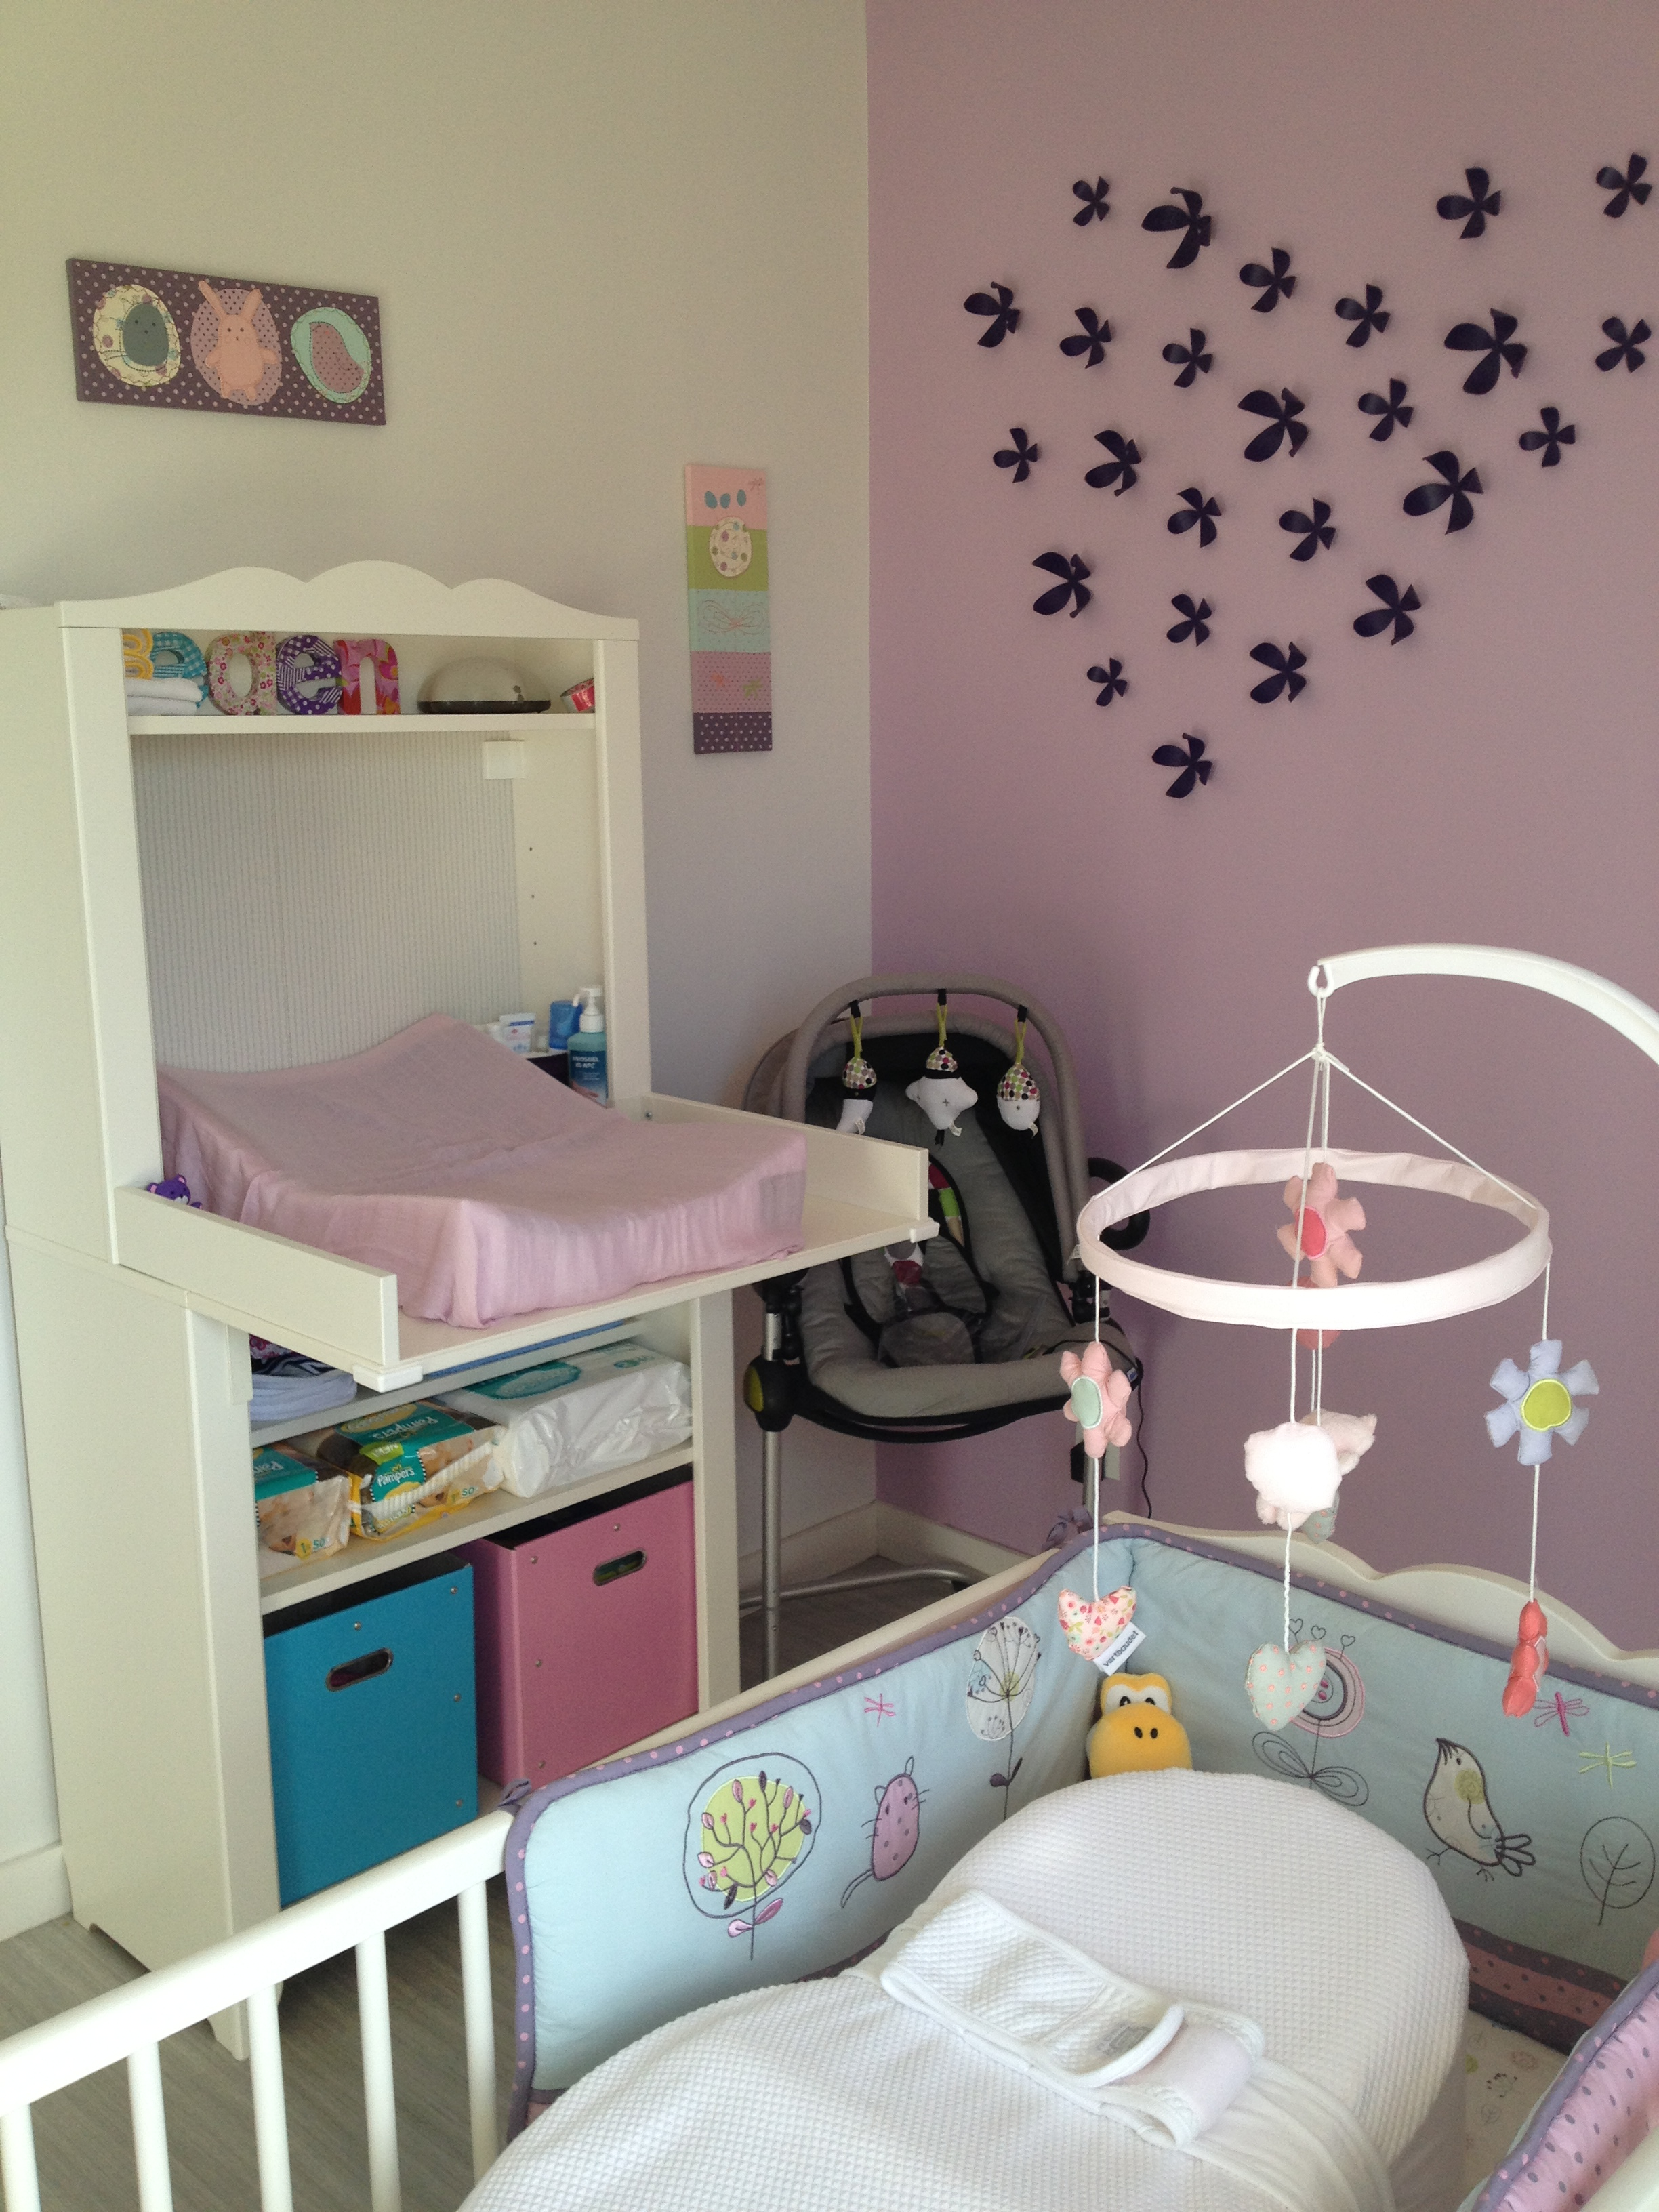 Baby 39 s room le final maman floutch blog pour mamans parents de jumeaux for Idee deco slaapkamer baby meisje